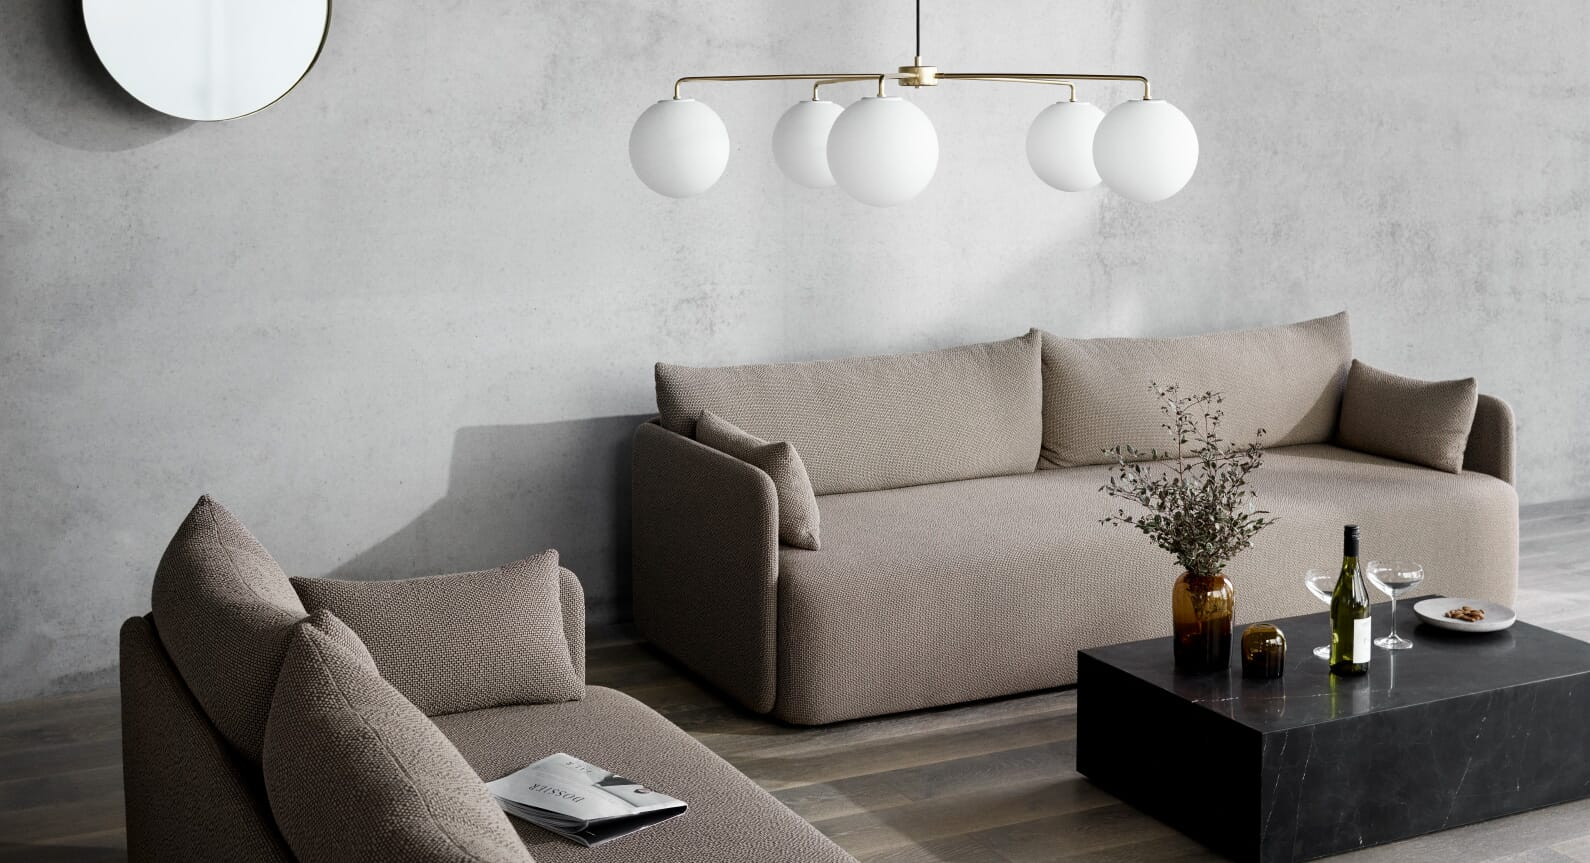 How To Design Your Home With Danish Furniture